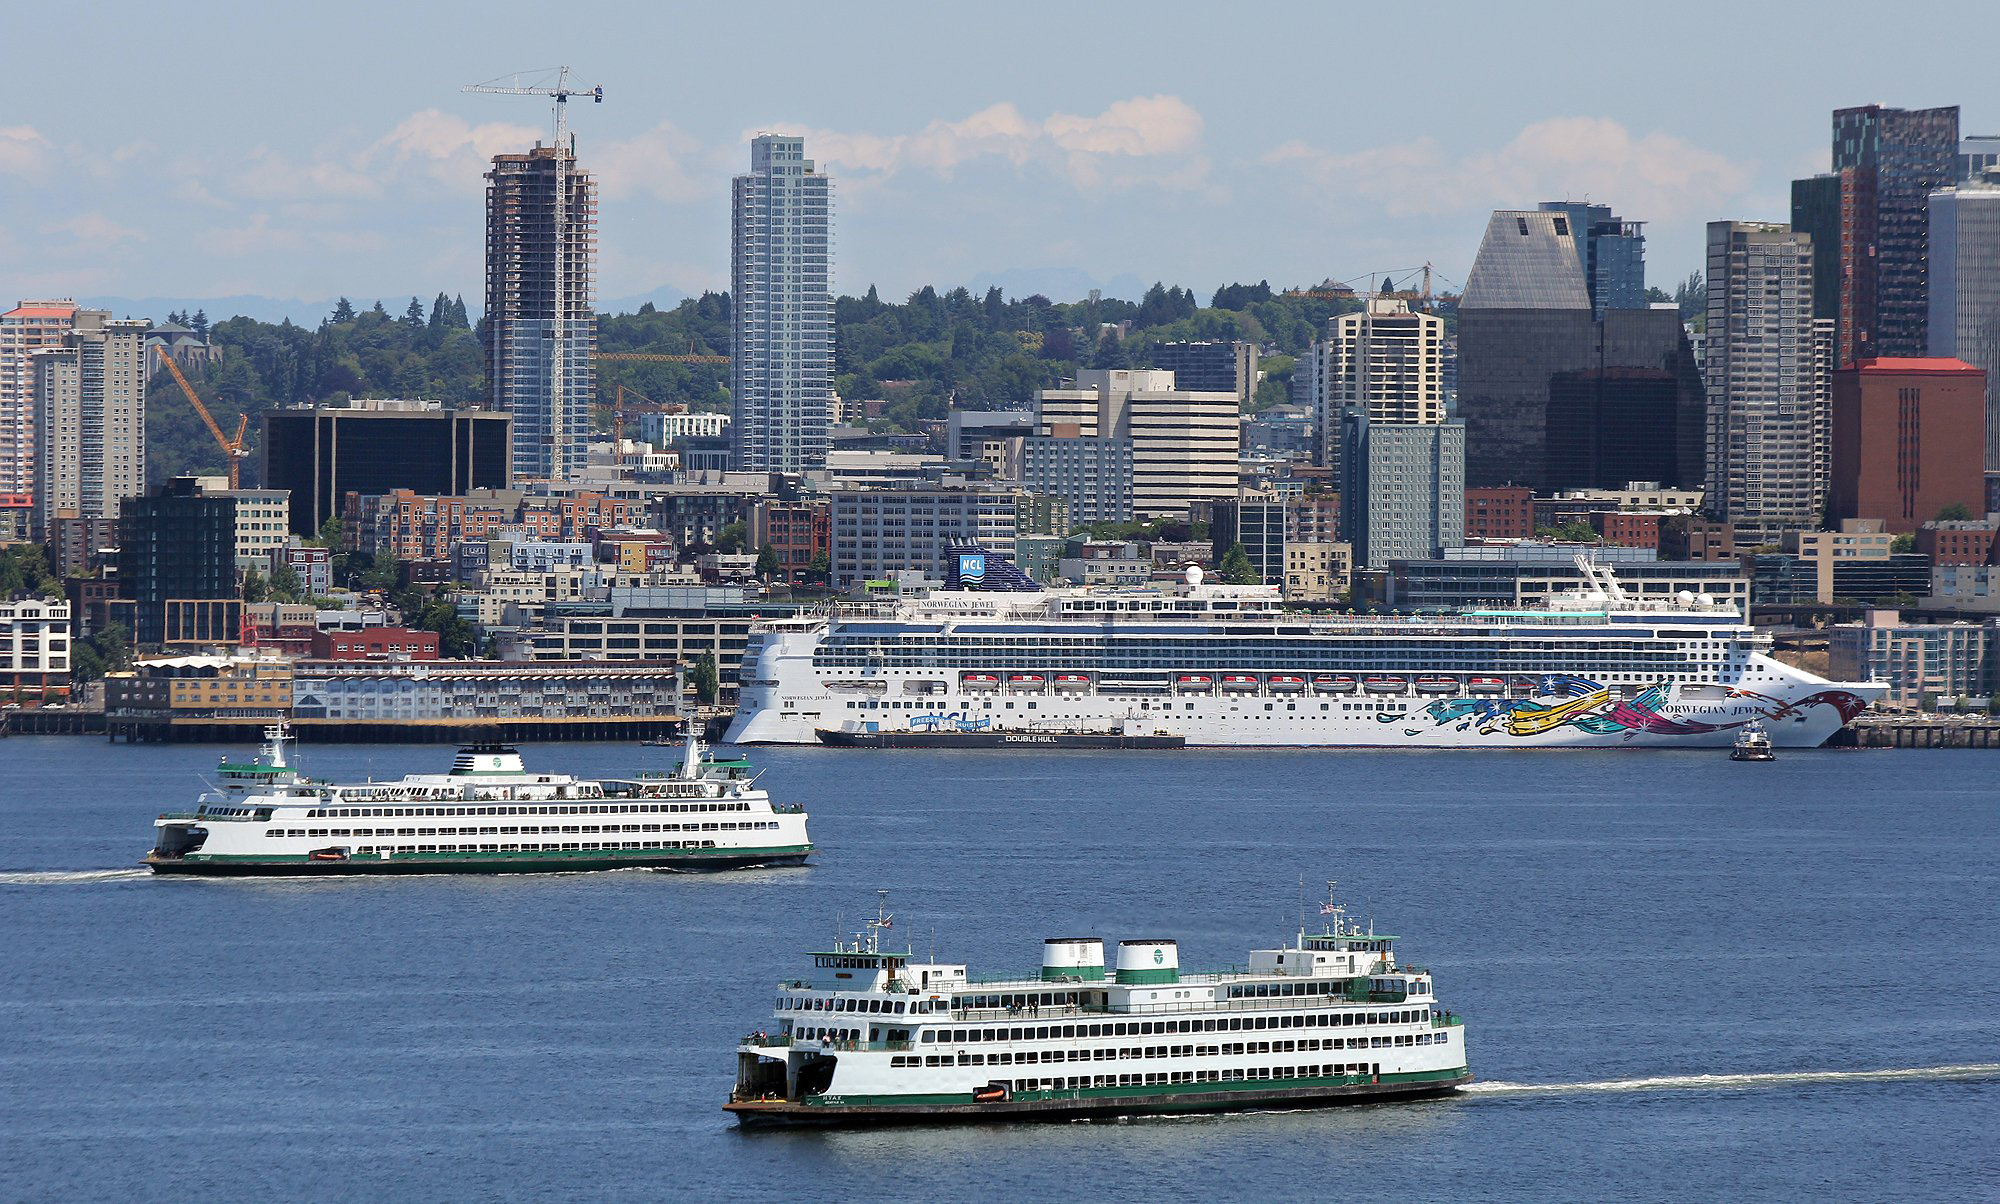 Larry Steagall / Kitsap Sun Lots of big boats, including two ferries and a cruise ship, accent the Seattle scene this weekend under bright skies. Expect more picturesque days this week as forecasts call for sunny skies and highs in the 70s.